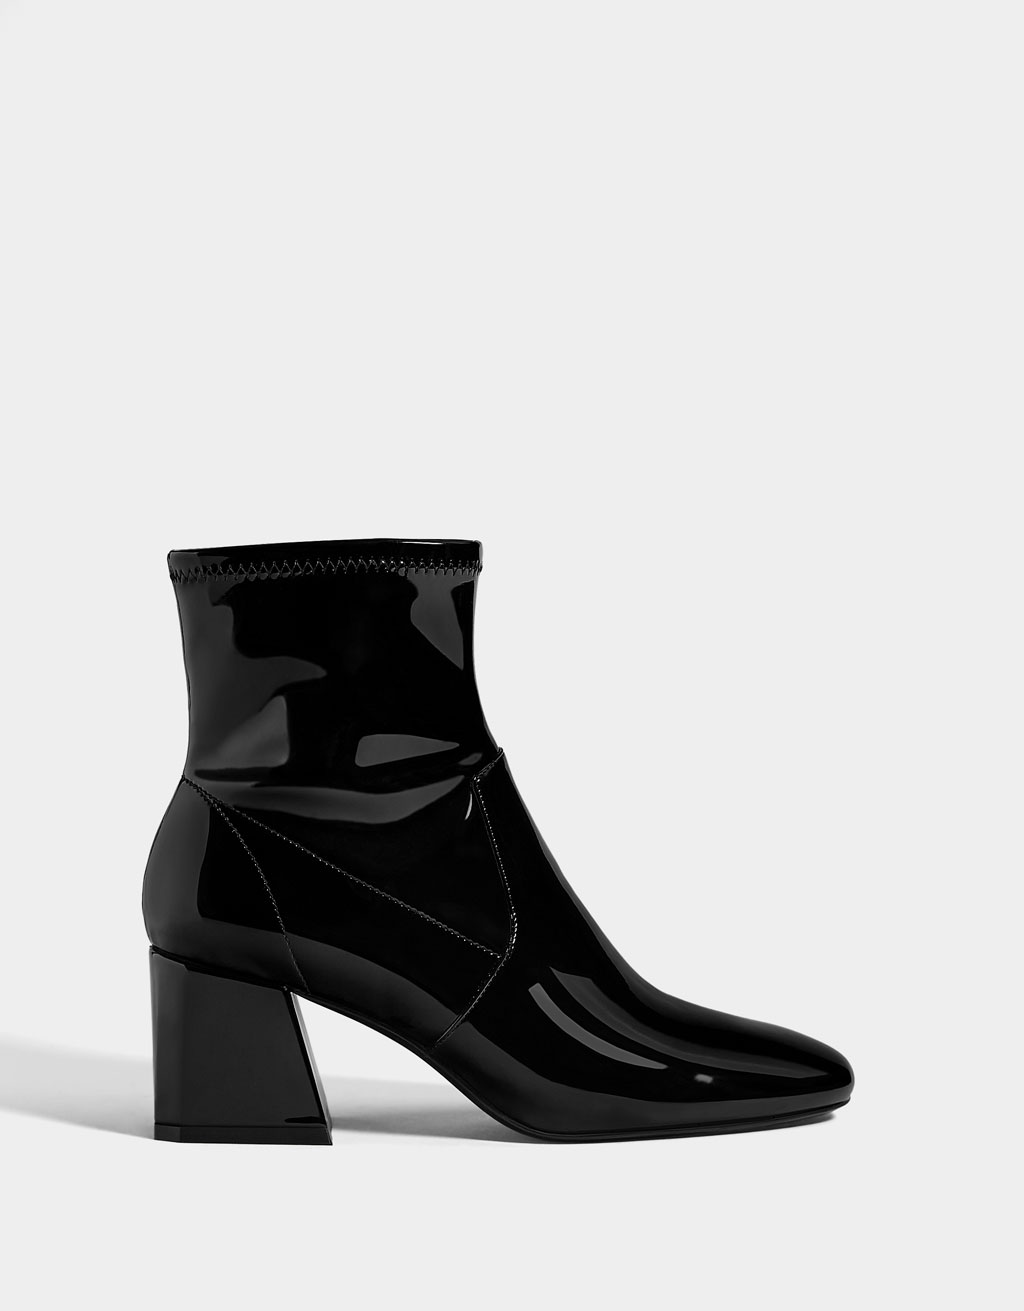 e091562c878 Mid-heel patent finish ankle boots - Party Collection - Bershka United  States